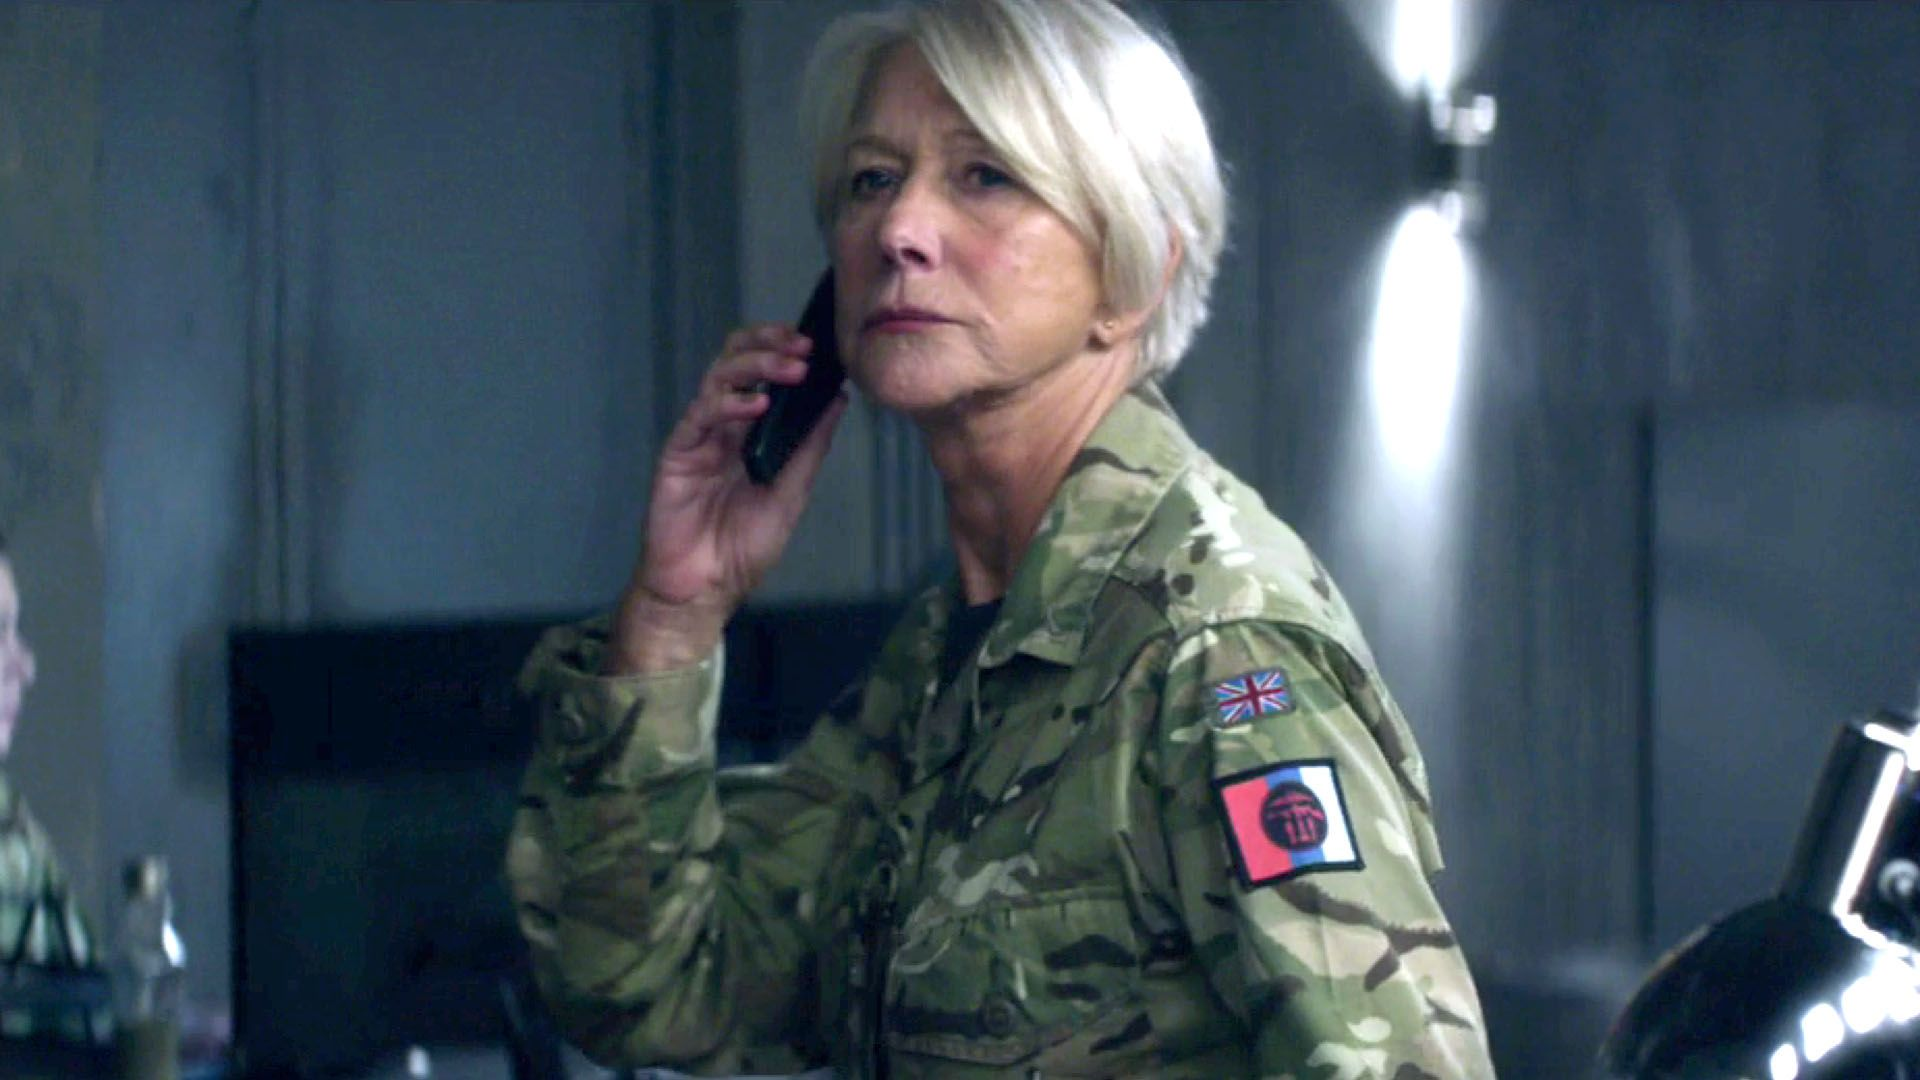 'Eye in the Sky' not a feel good movie but good story